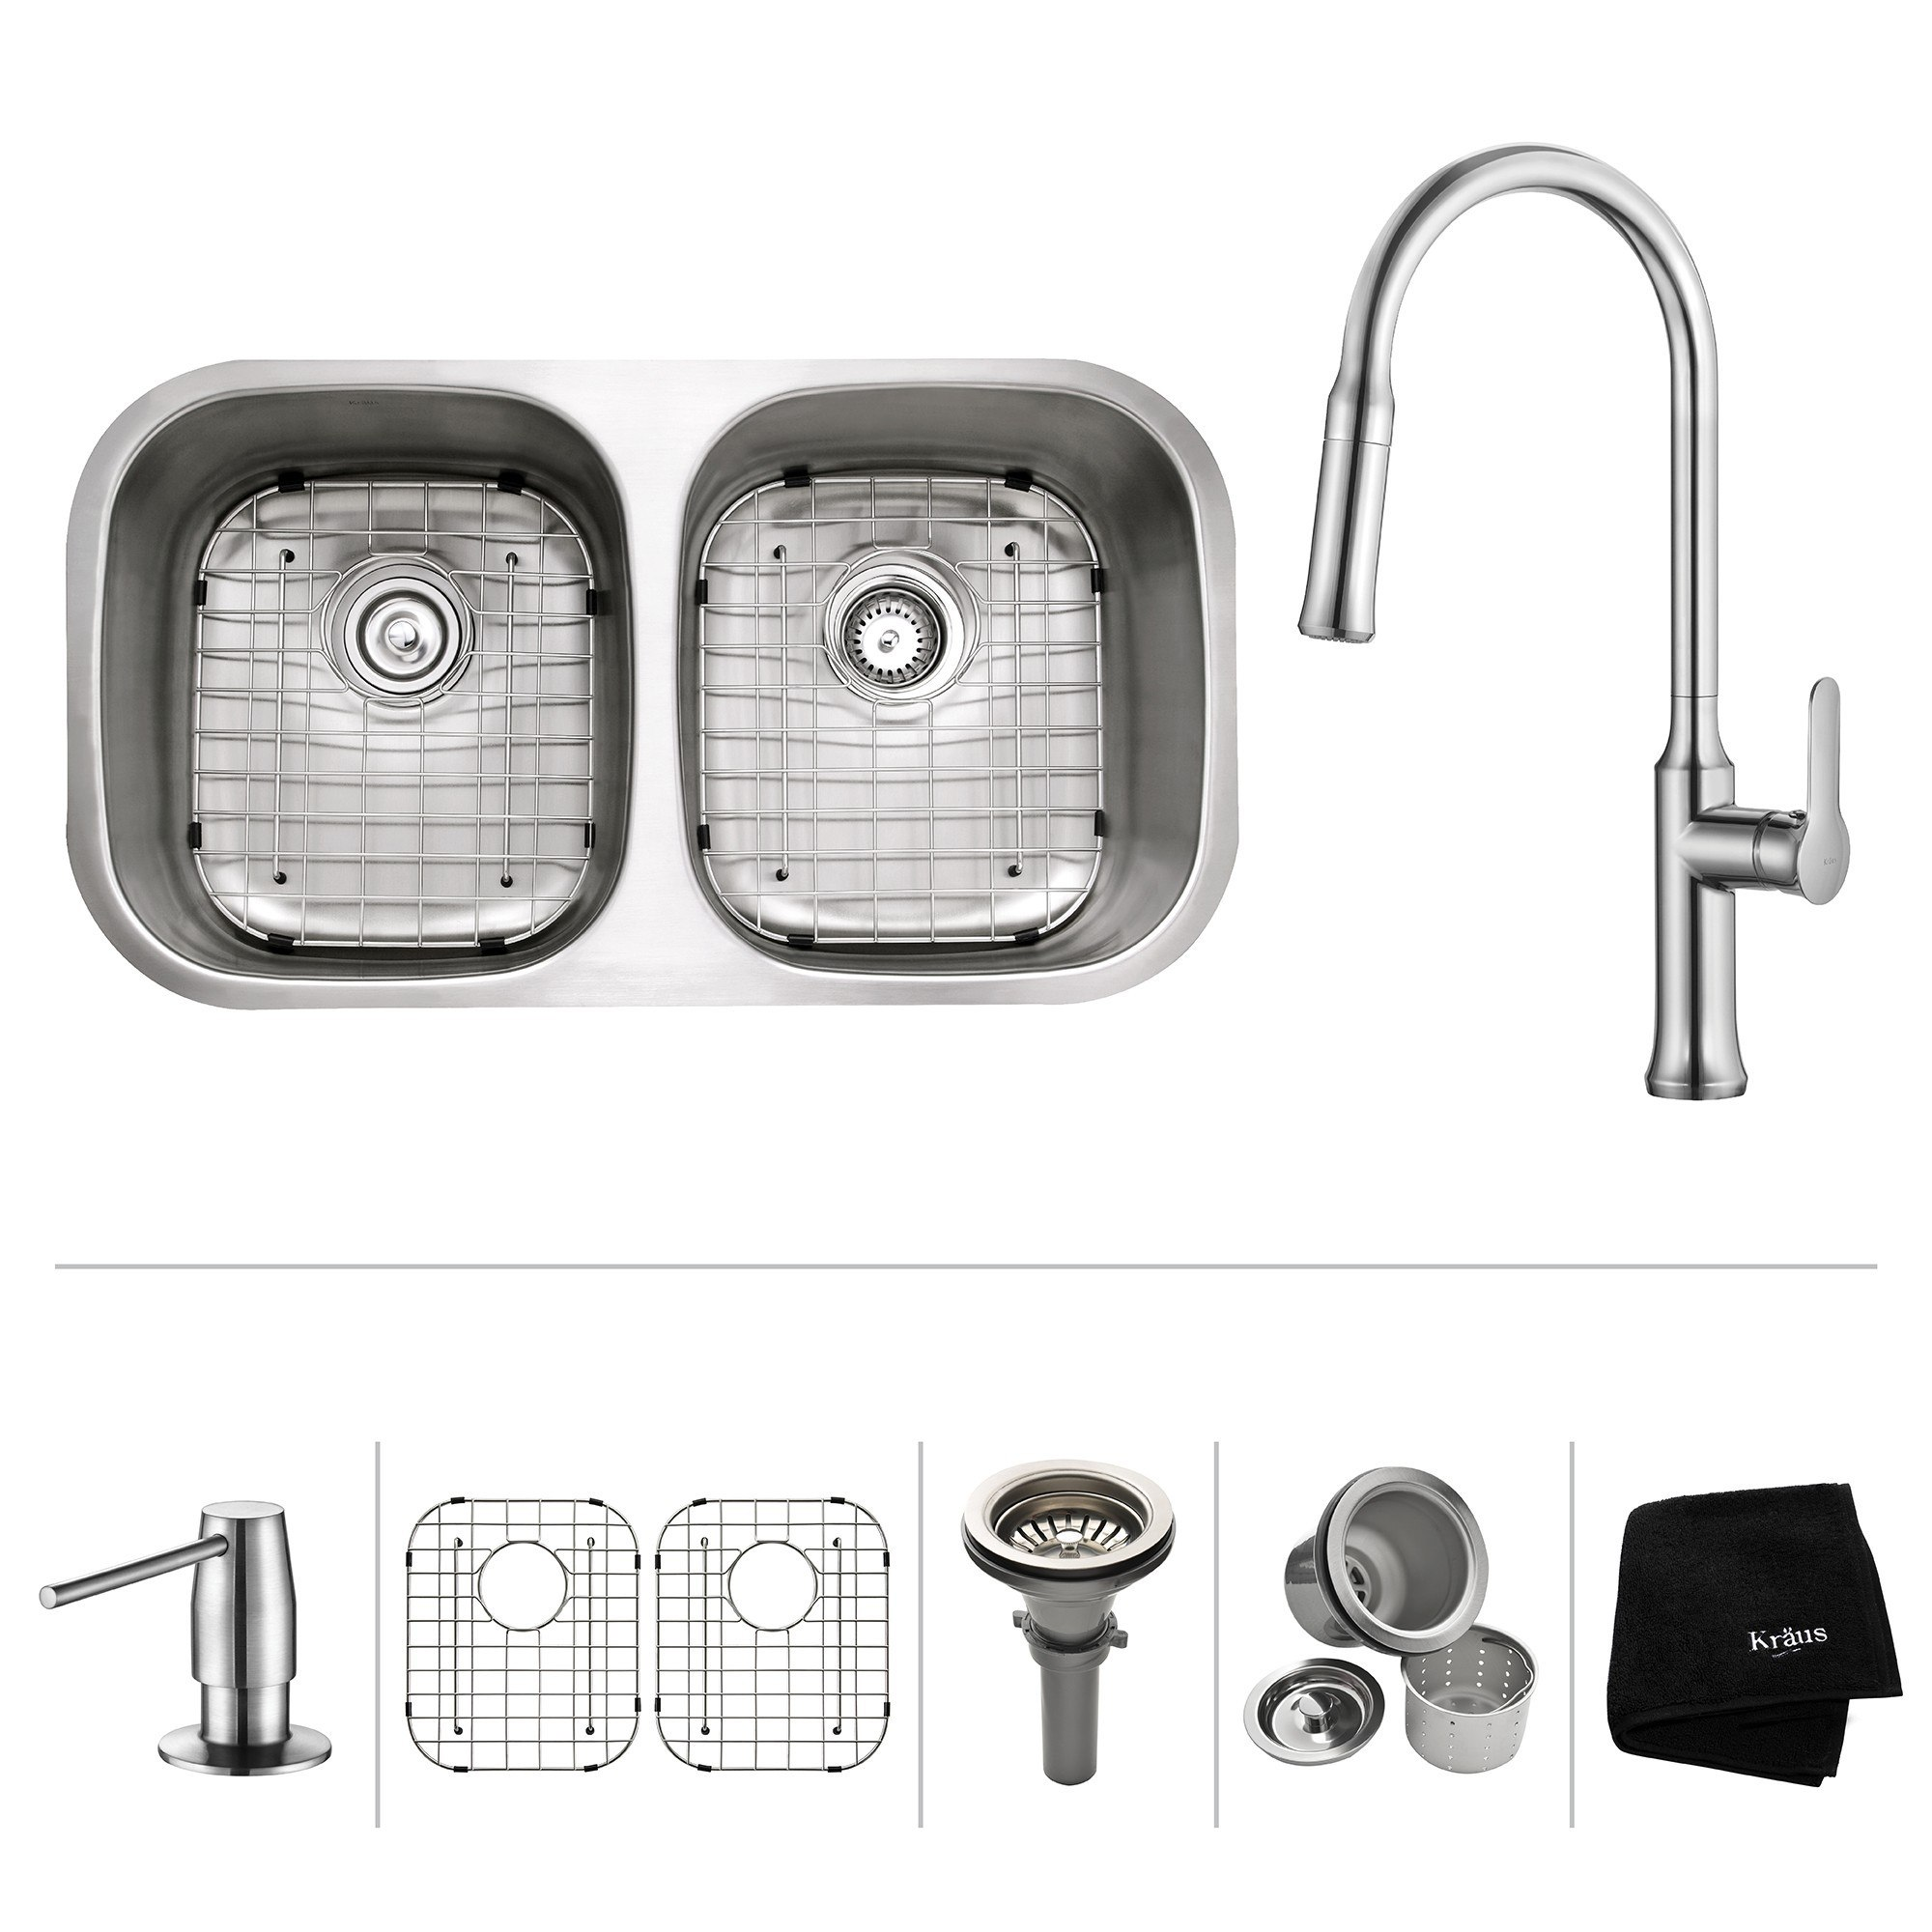 Kraus KBU22-1630-42 32 Inch Undermount 50/50 Double Bowl Stainless Steel Sink with Pull Down Faucet